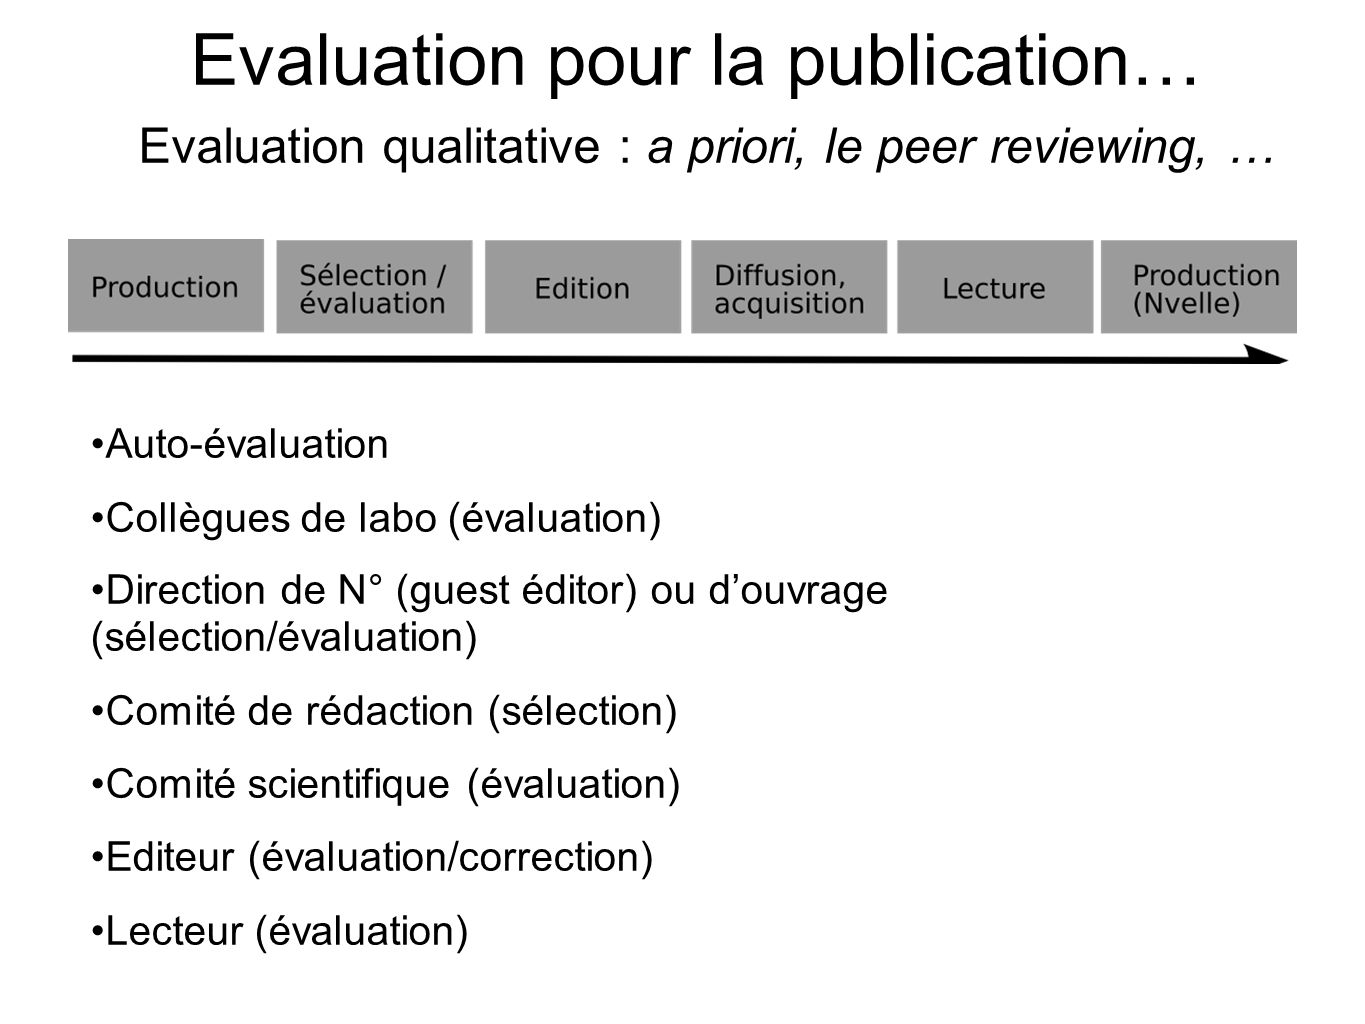 … Publication pour lévaluation Evaluation quantitative : a posteriori, la bibliométrie Garfield et le Science Citation Index (SCI) de lInstitute for Scientific Information (ISI) STM/SHS : JCR et JCR-SS.